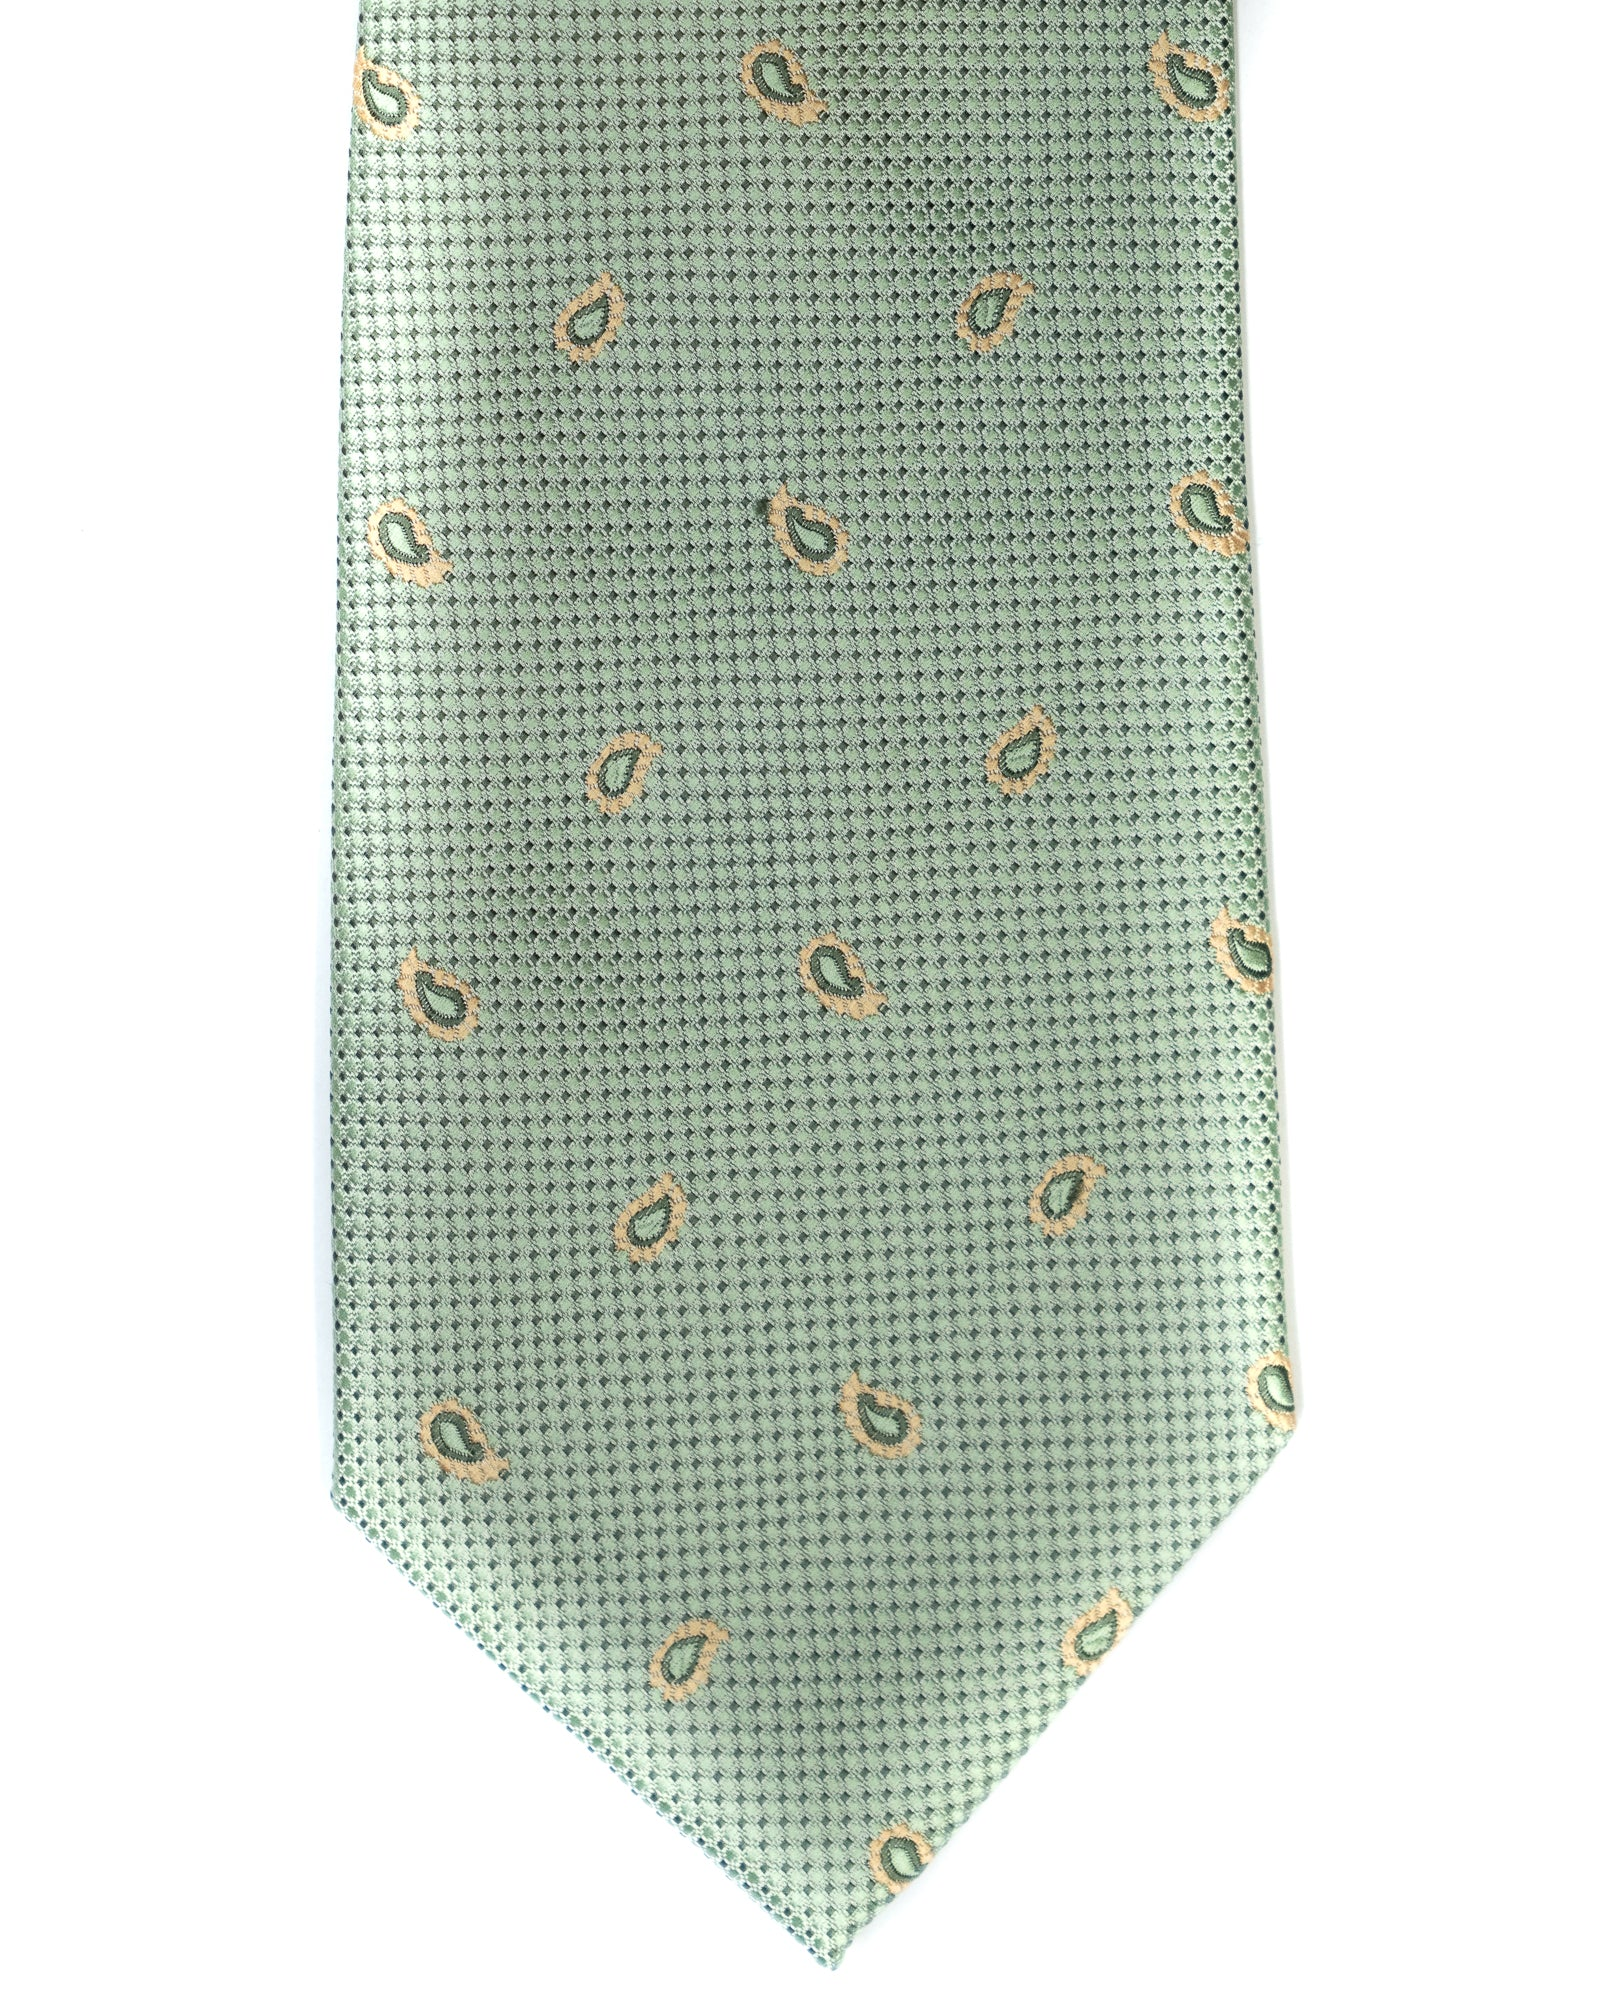 Gianfranco Foulard Tie in Green with Yellow - Rainwater's